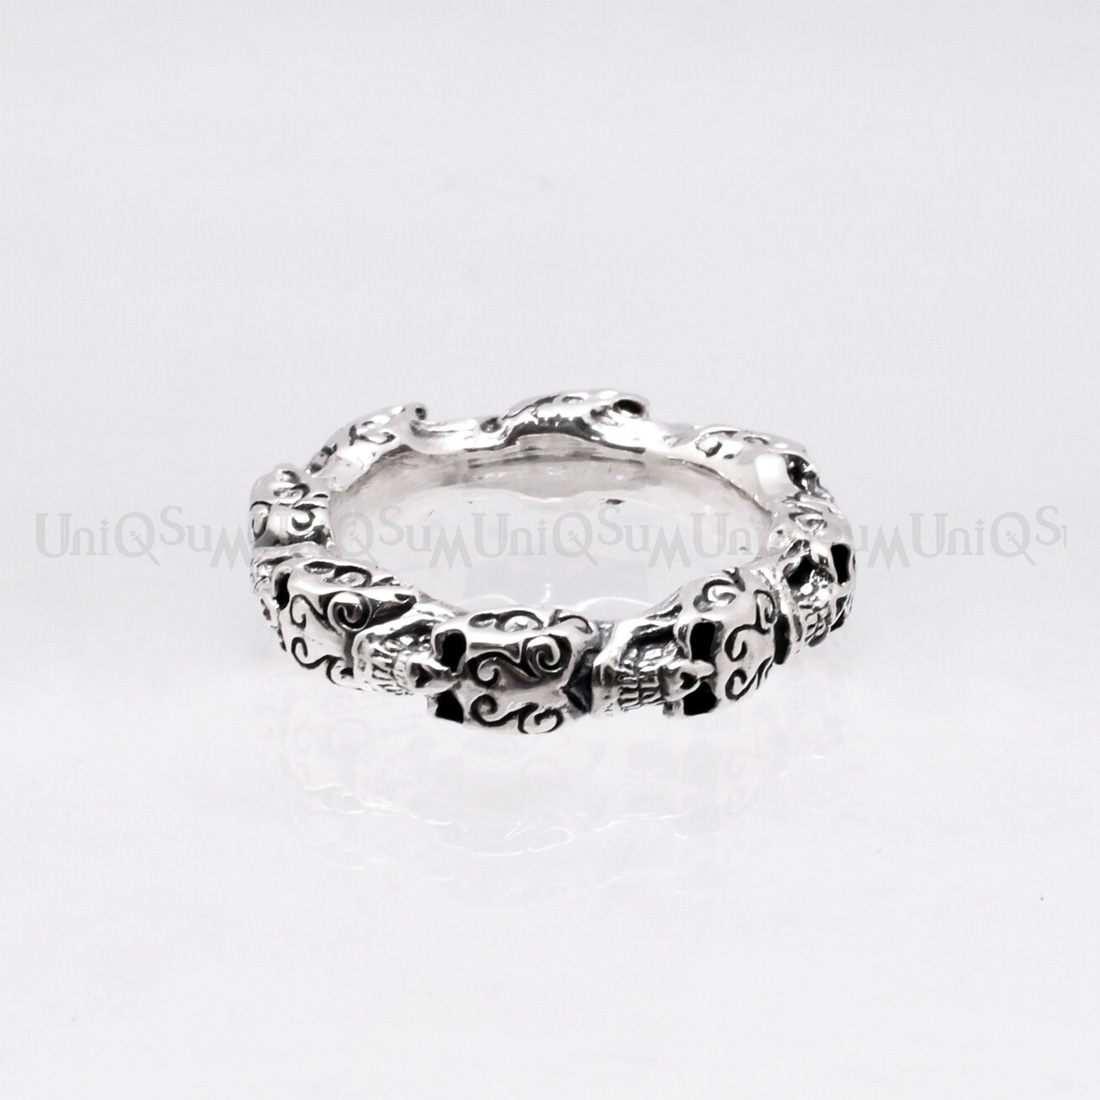 triple by linked original rings personalised thejewelleryboutique product silver jewellery sterling ring the